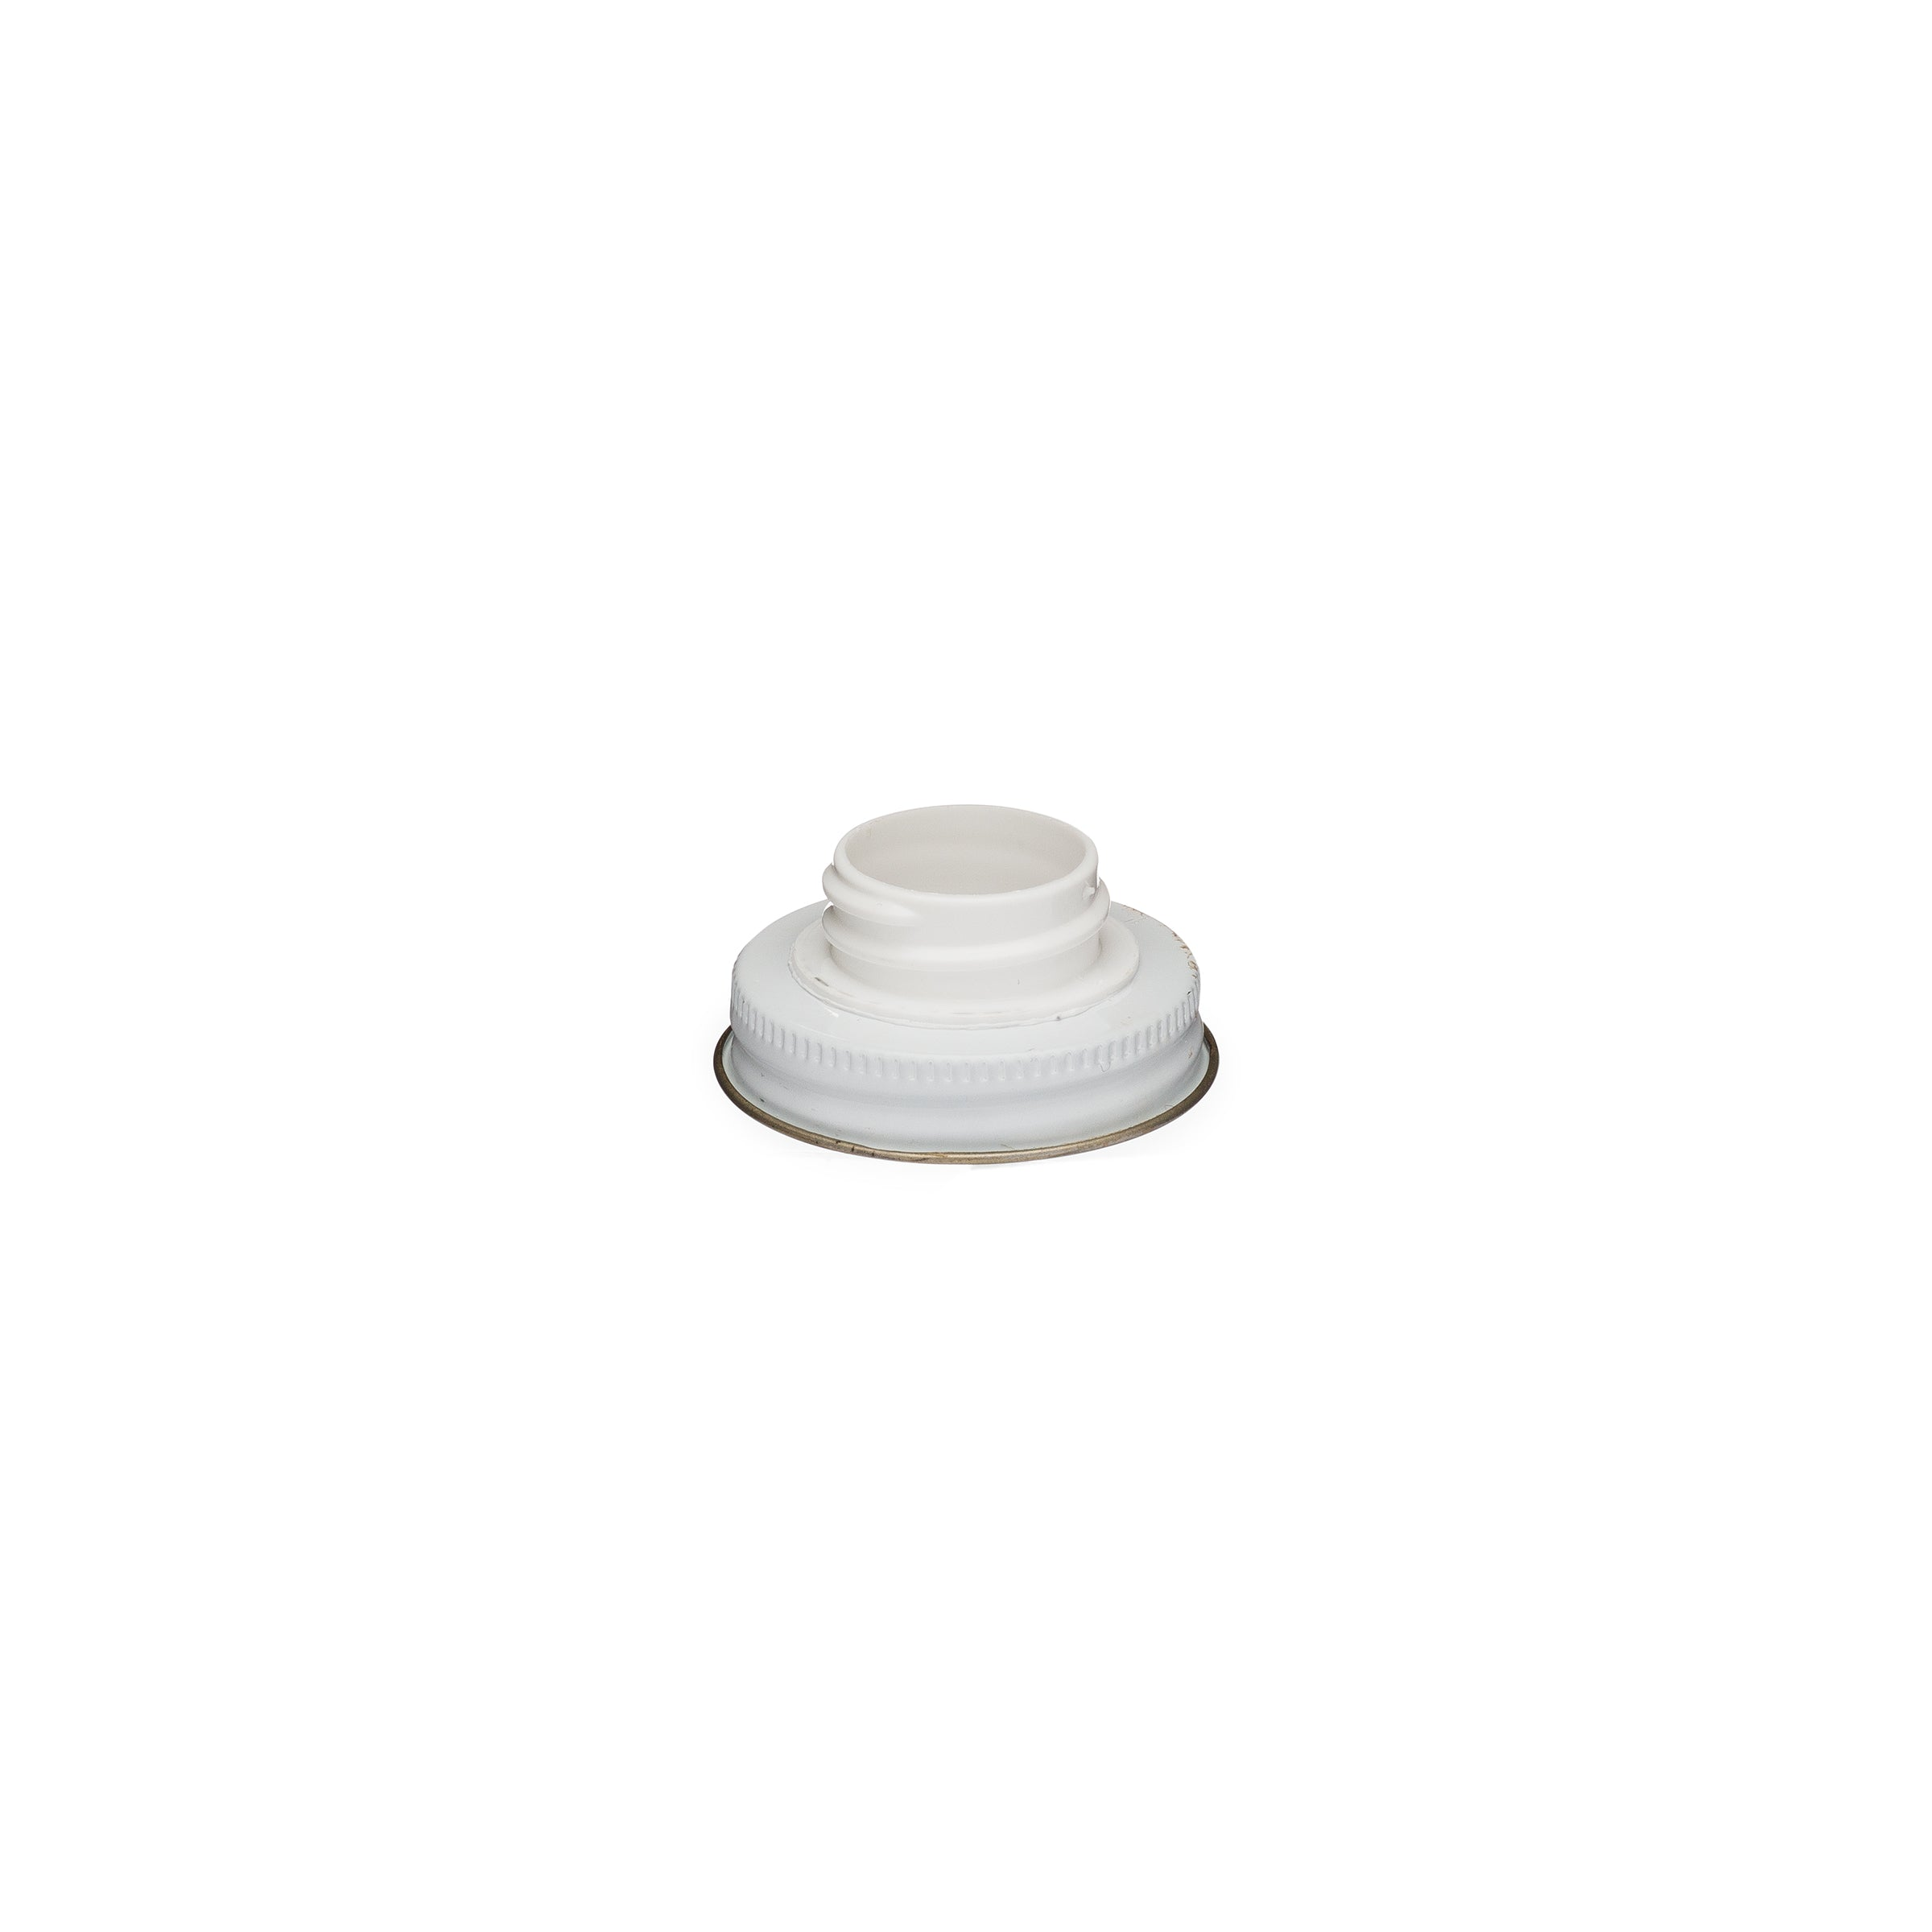 28-400/43-400 Metal Adaptor Cap